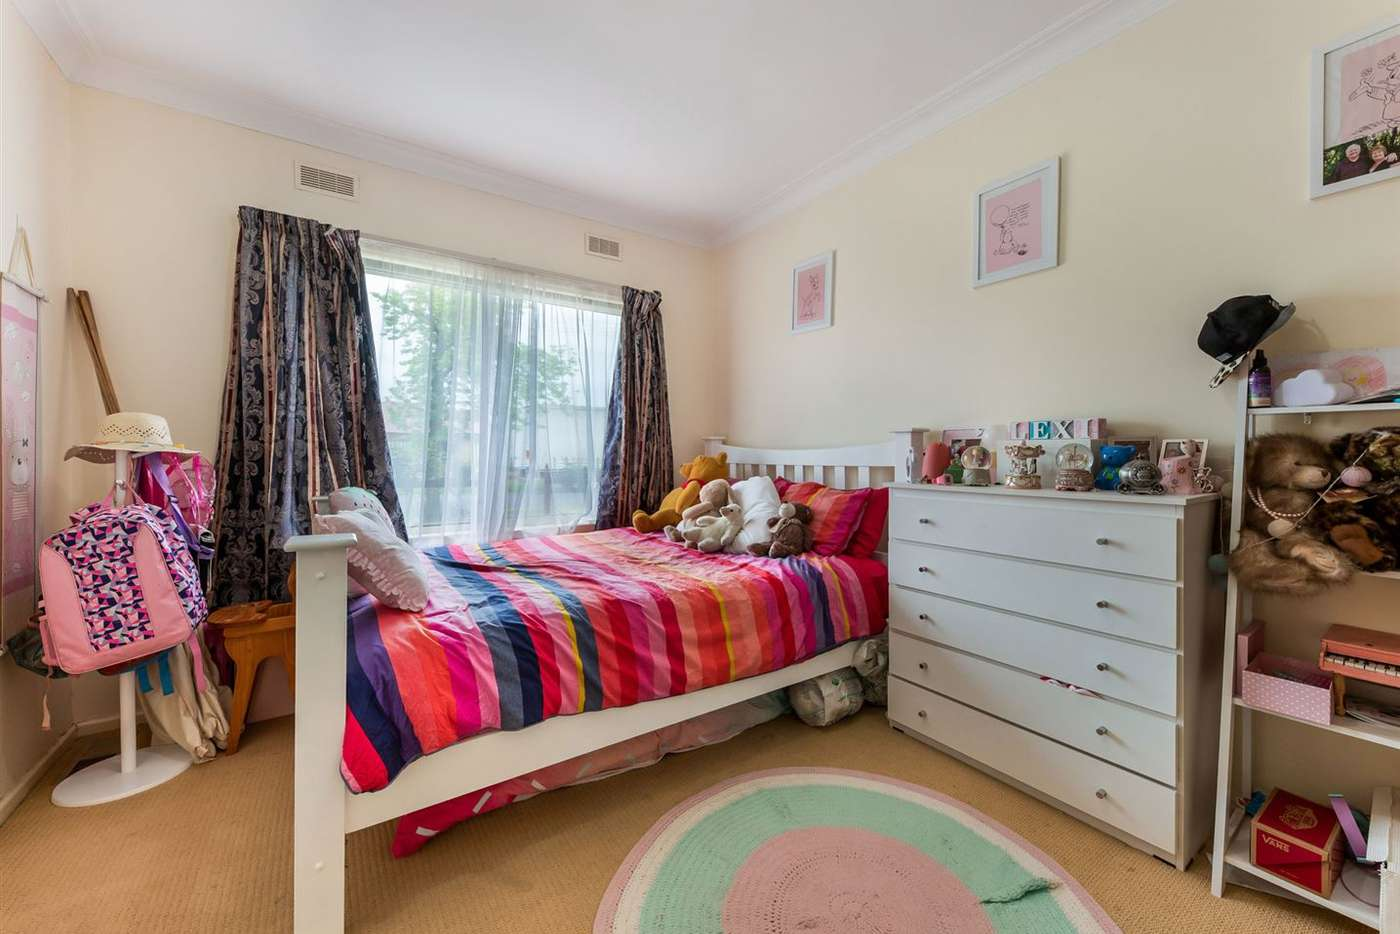 Sixth view of Homely house listing, 27 Brodie Street, Wangaratta VIC 3677